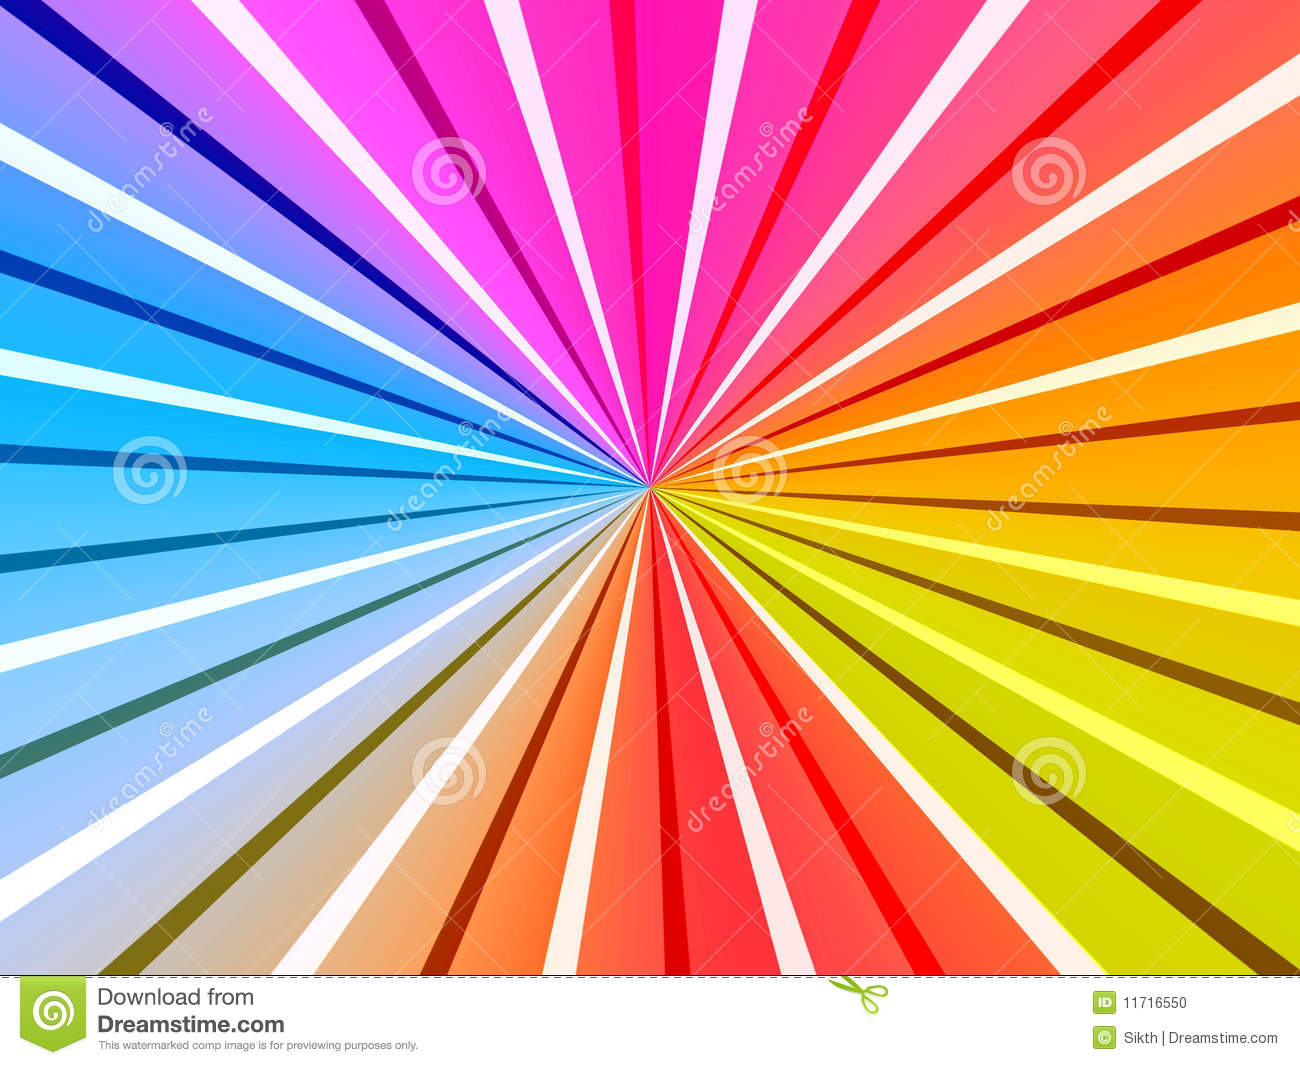 download wallpaper colorful rays - photo #9